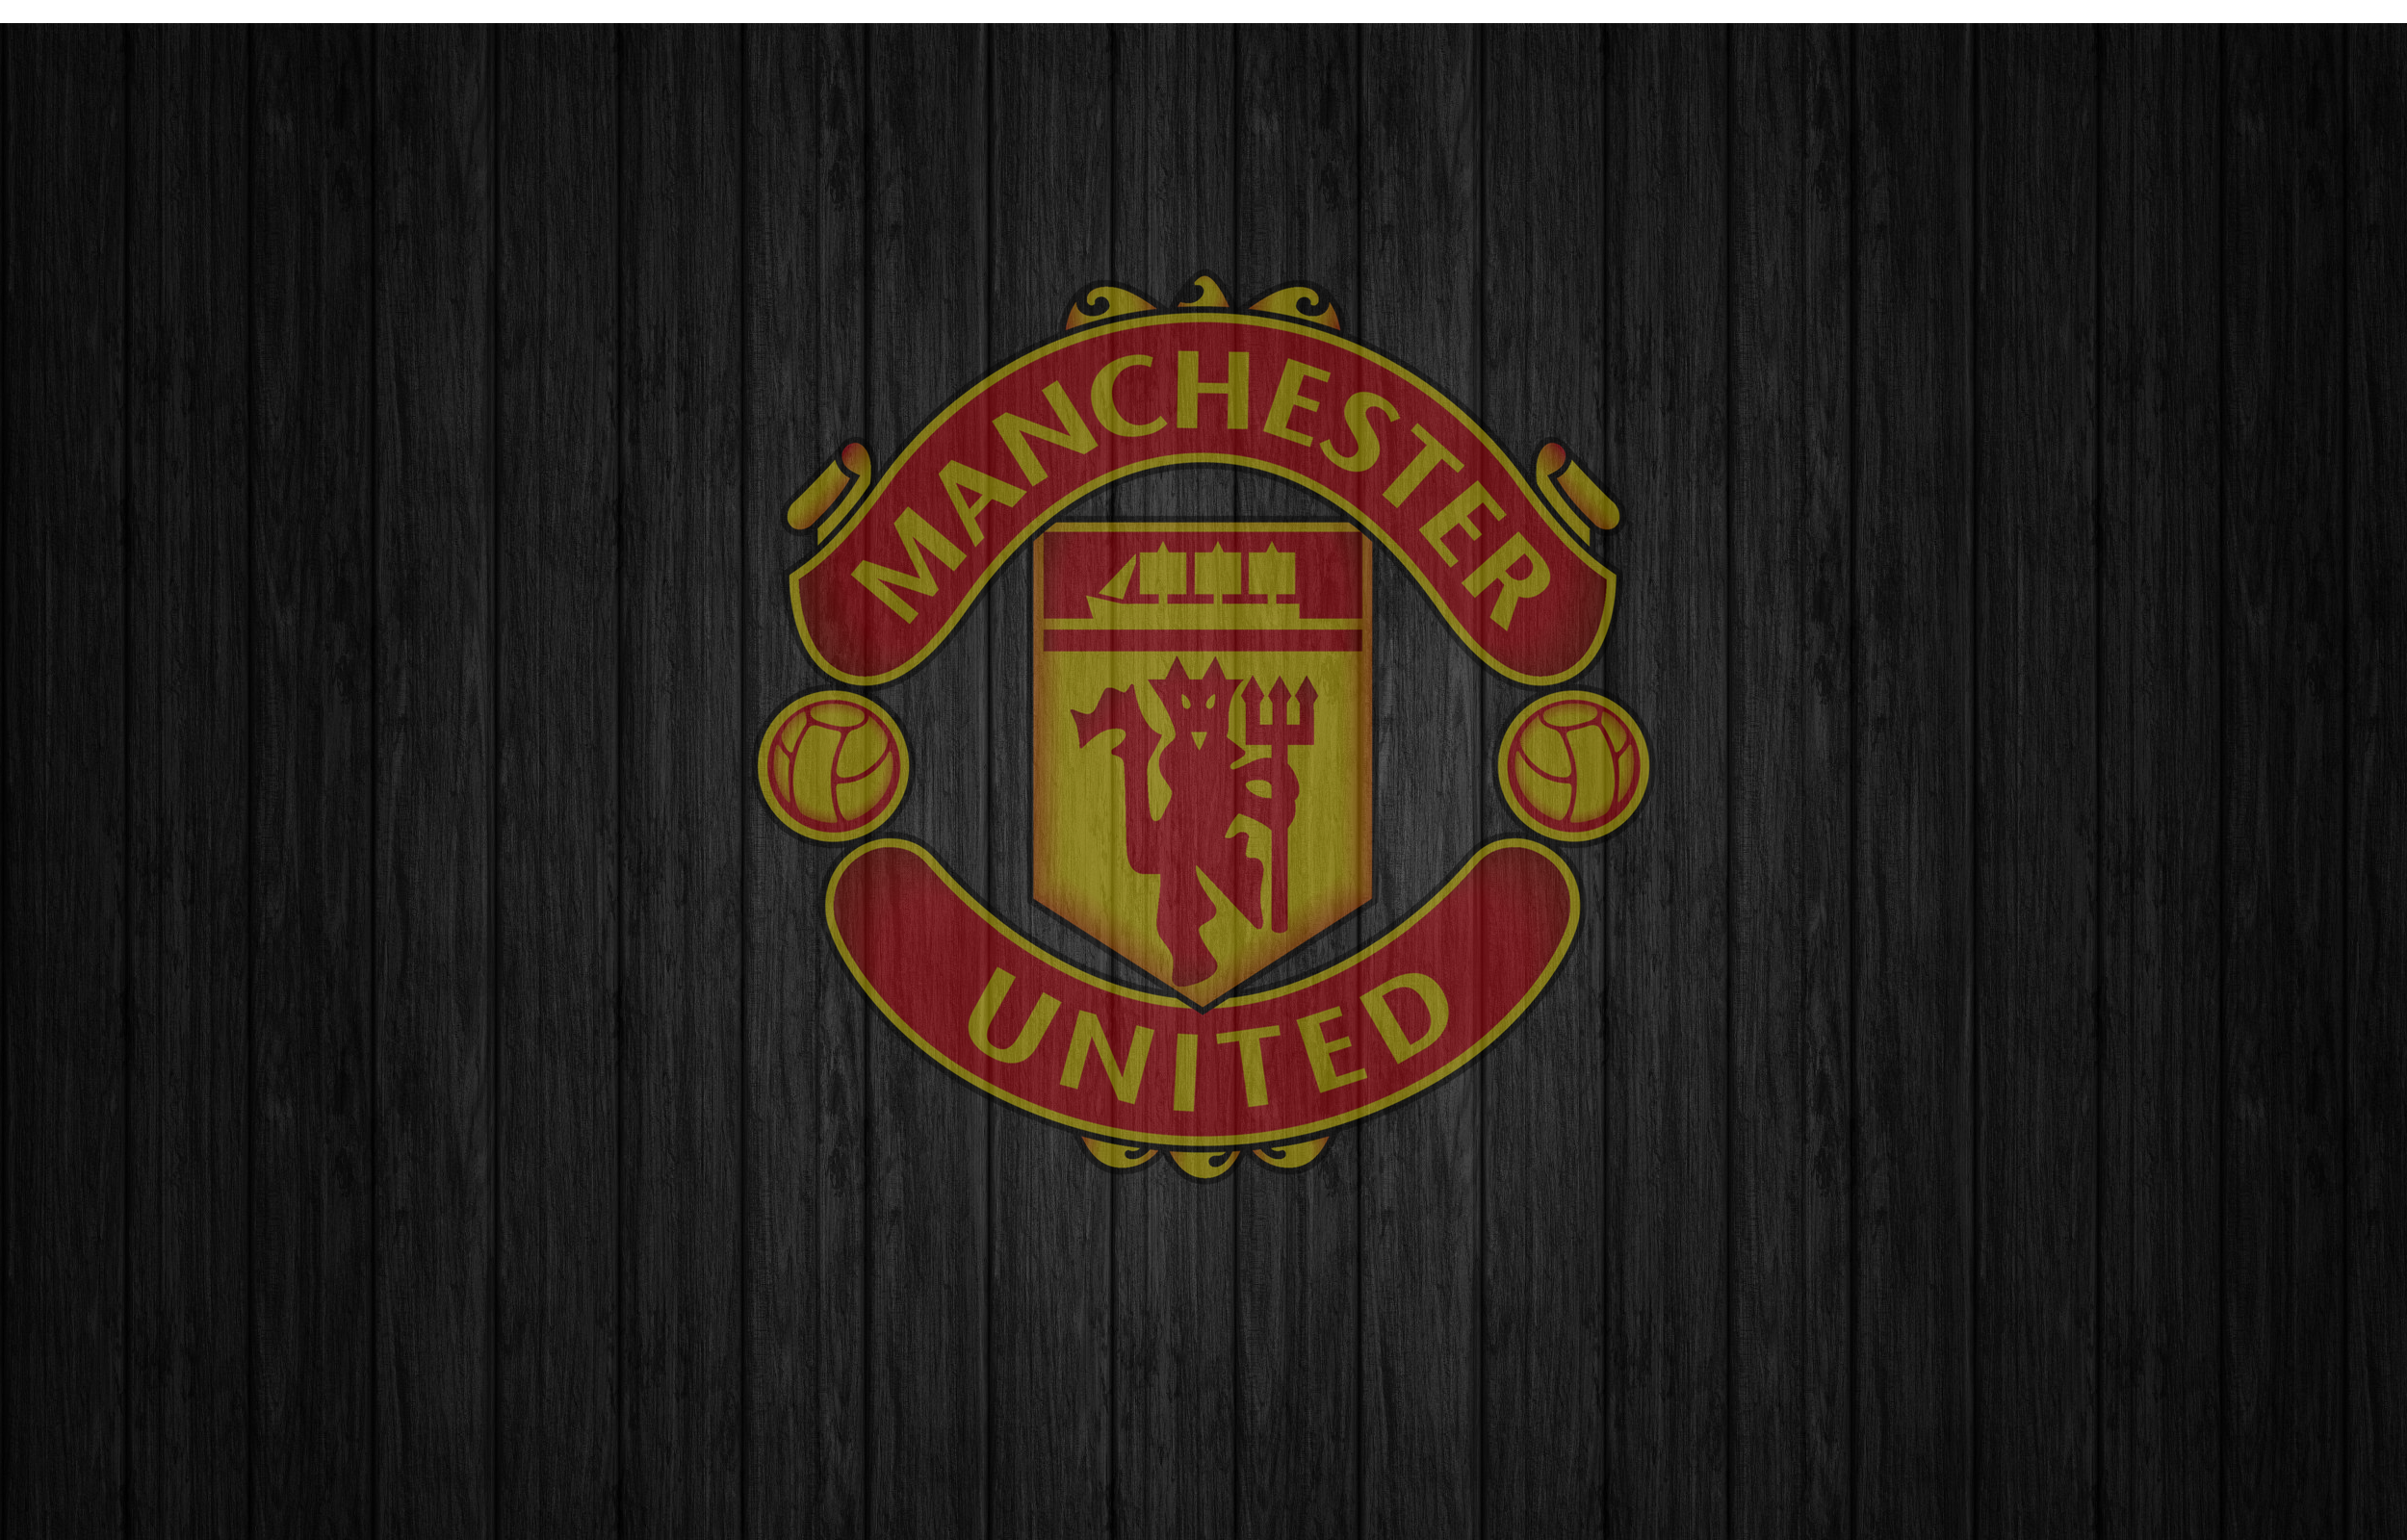 Manchester united wallpaper by himfin93 on deviantart manchester united wallpaper by himfin93 manchester united wallpaper by himfin93 voltagebd Image collections